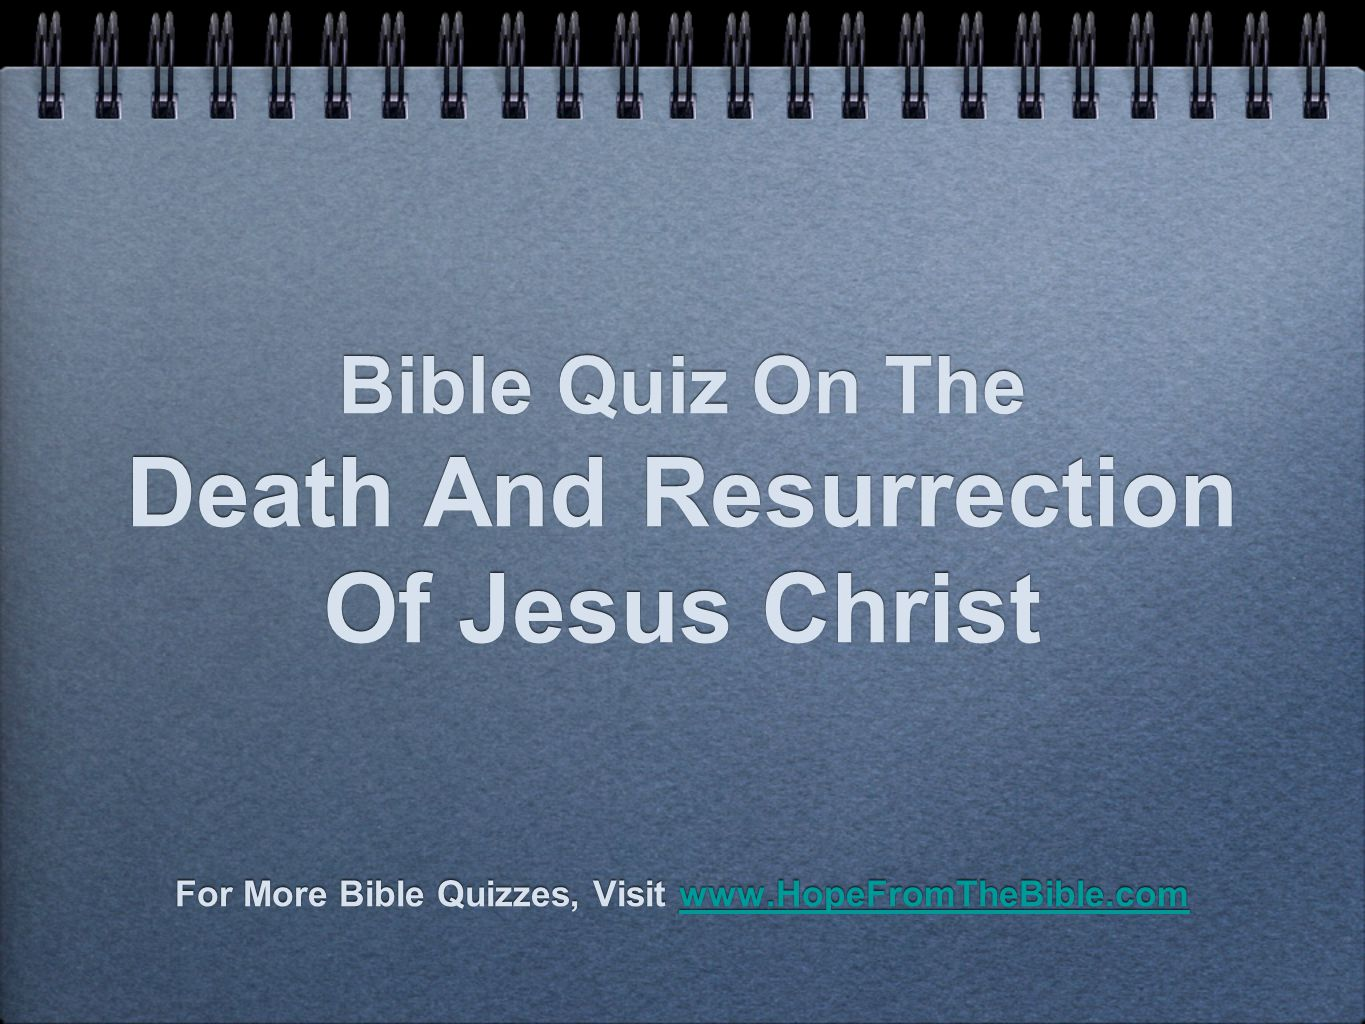 Bible Quiz On The Death And Resurrection Of Jesus Christ For More Bible Quizzes, Visit www.HopeFromTheBible.comwww.HopeFromTheBible.com For More Bible Quizzes, Visit www.HopeFromTheBible.comwww.HopeFromTheBible.com